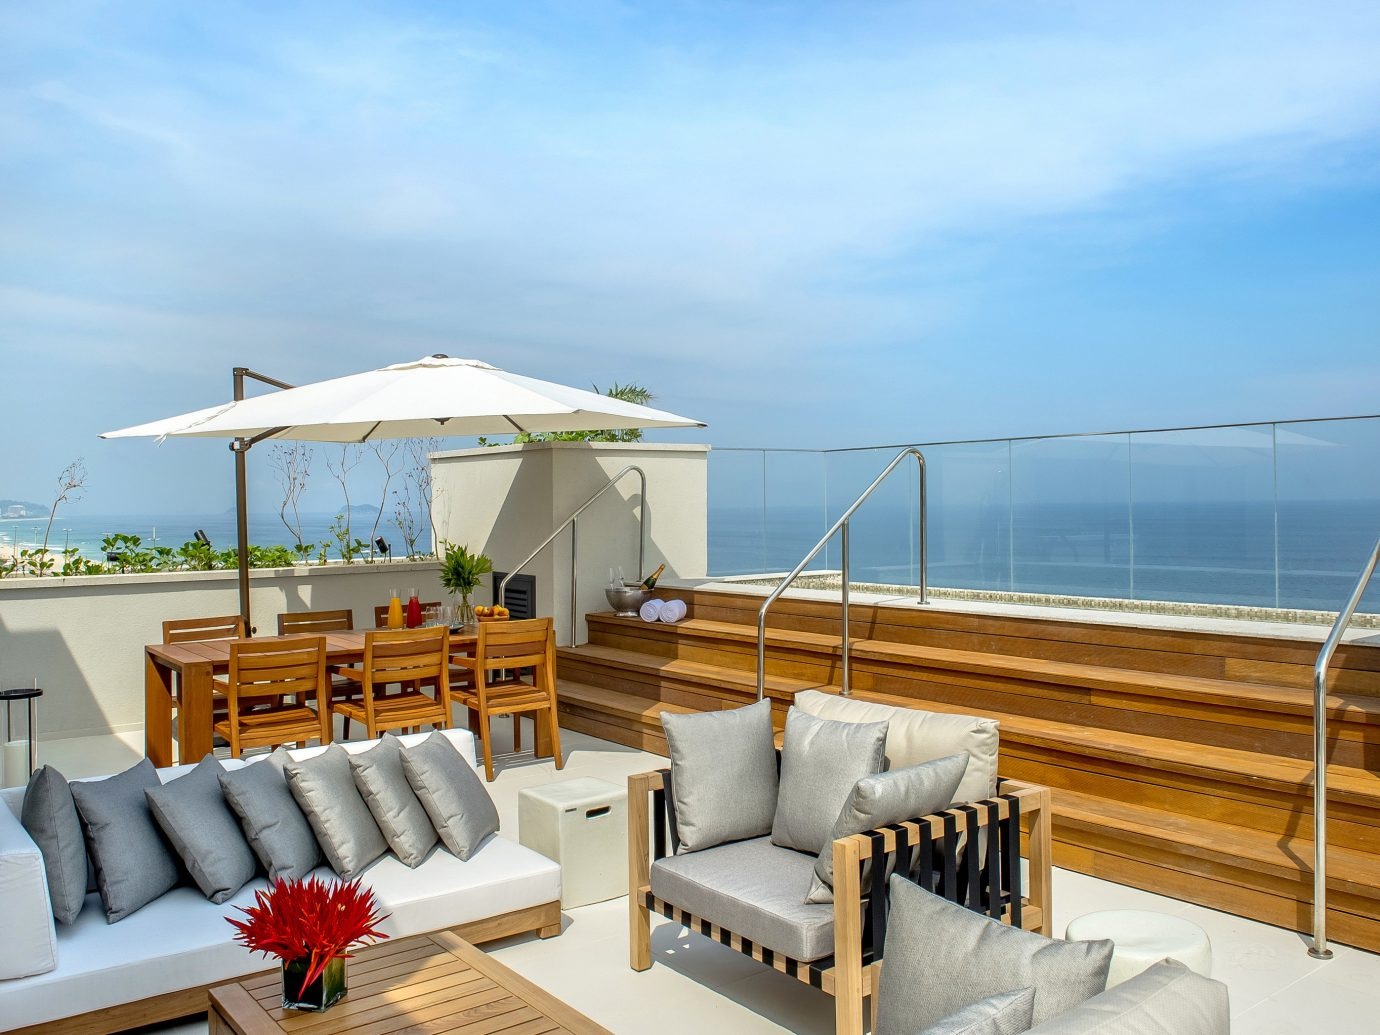 Hotels Romance sky Living indoor property room real estate penthouse apartment apartment Resort vacation Deck Sea outdoor structure Balcony condominium sunlounger outdoor furniture roof estate furniture Villa